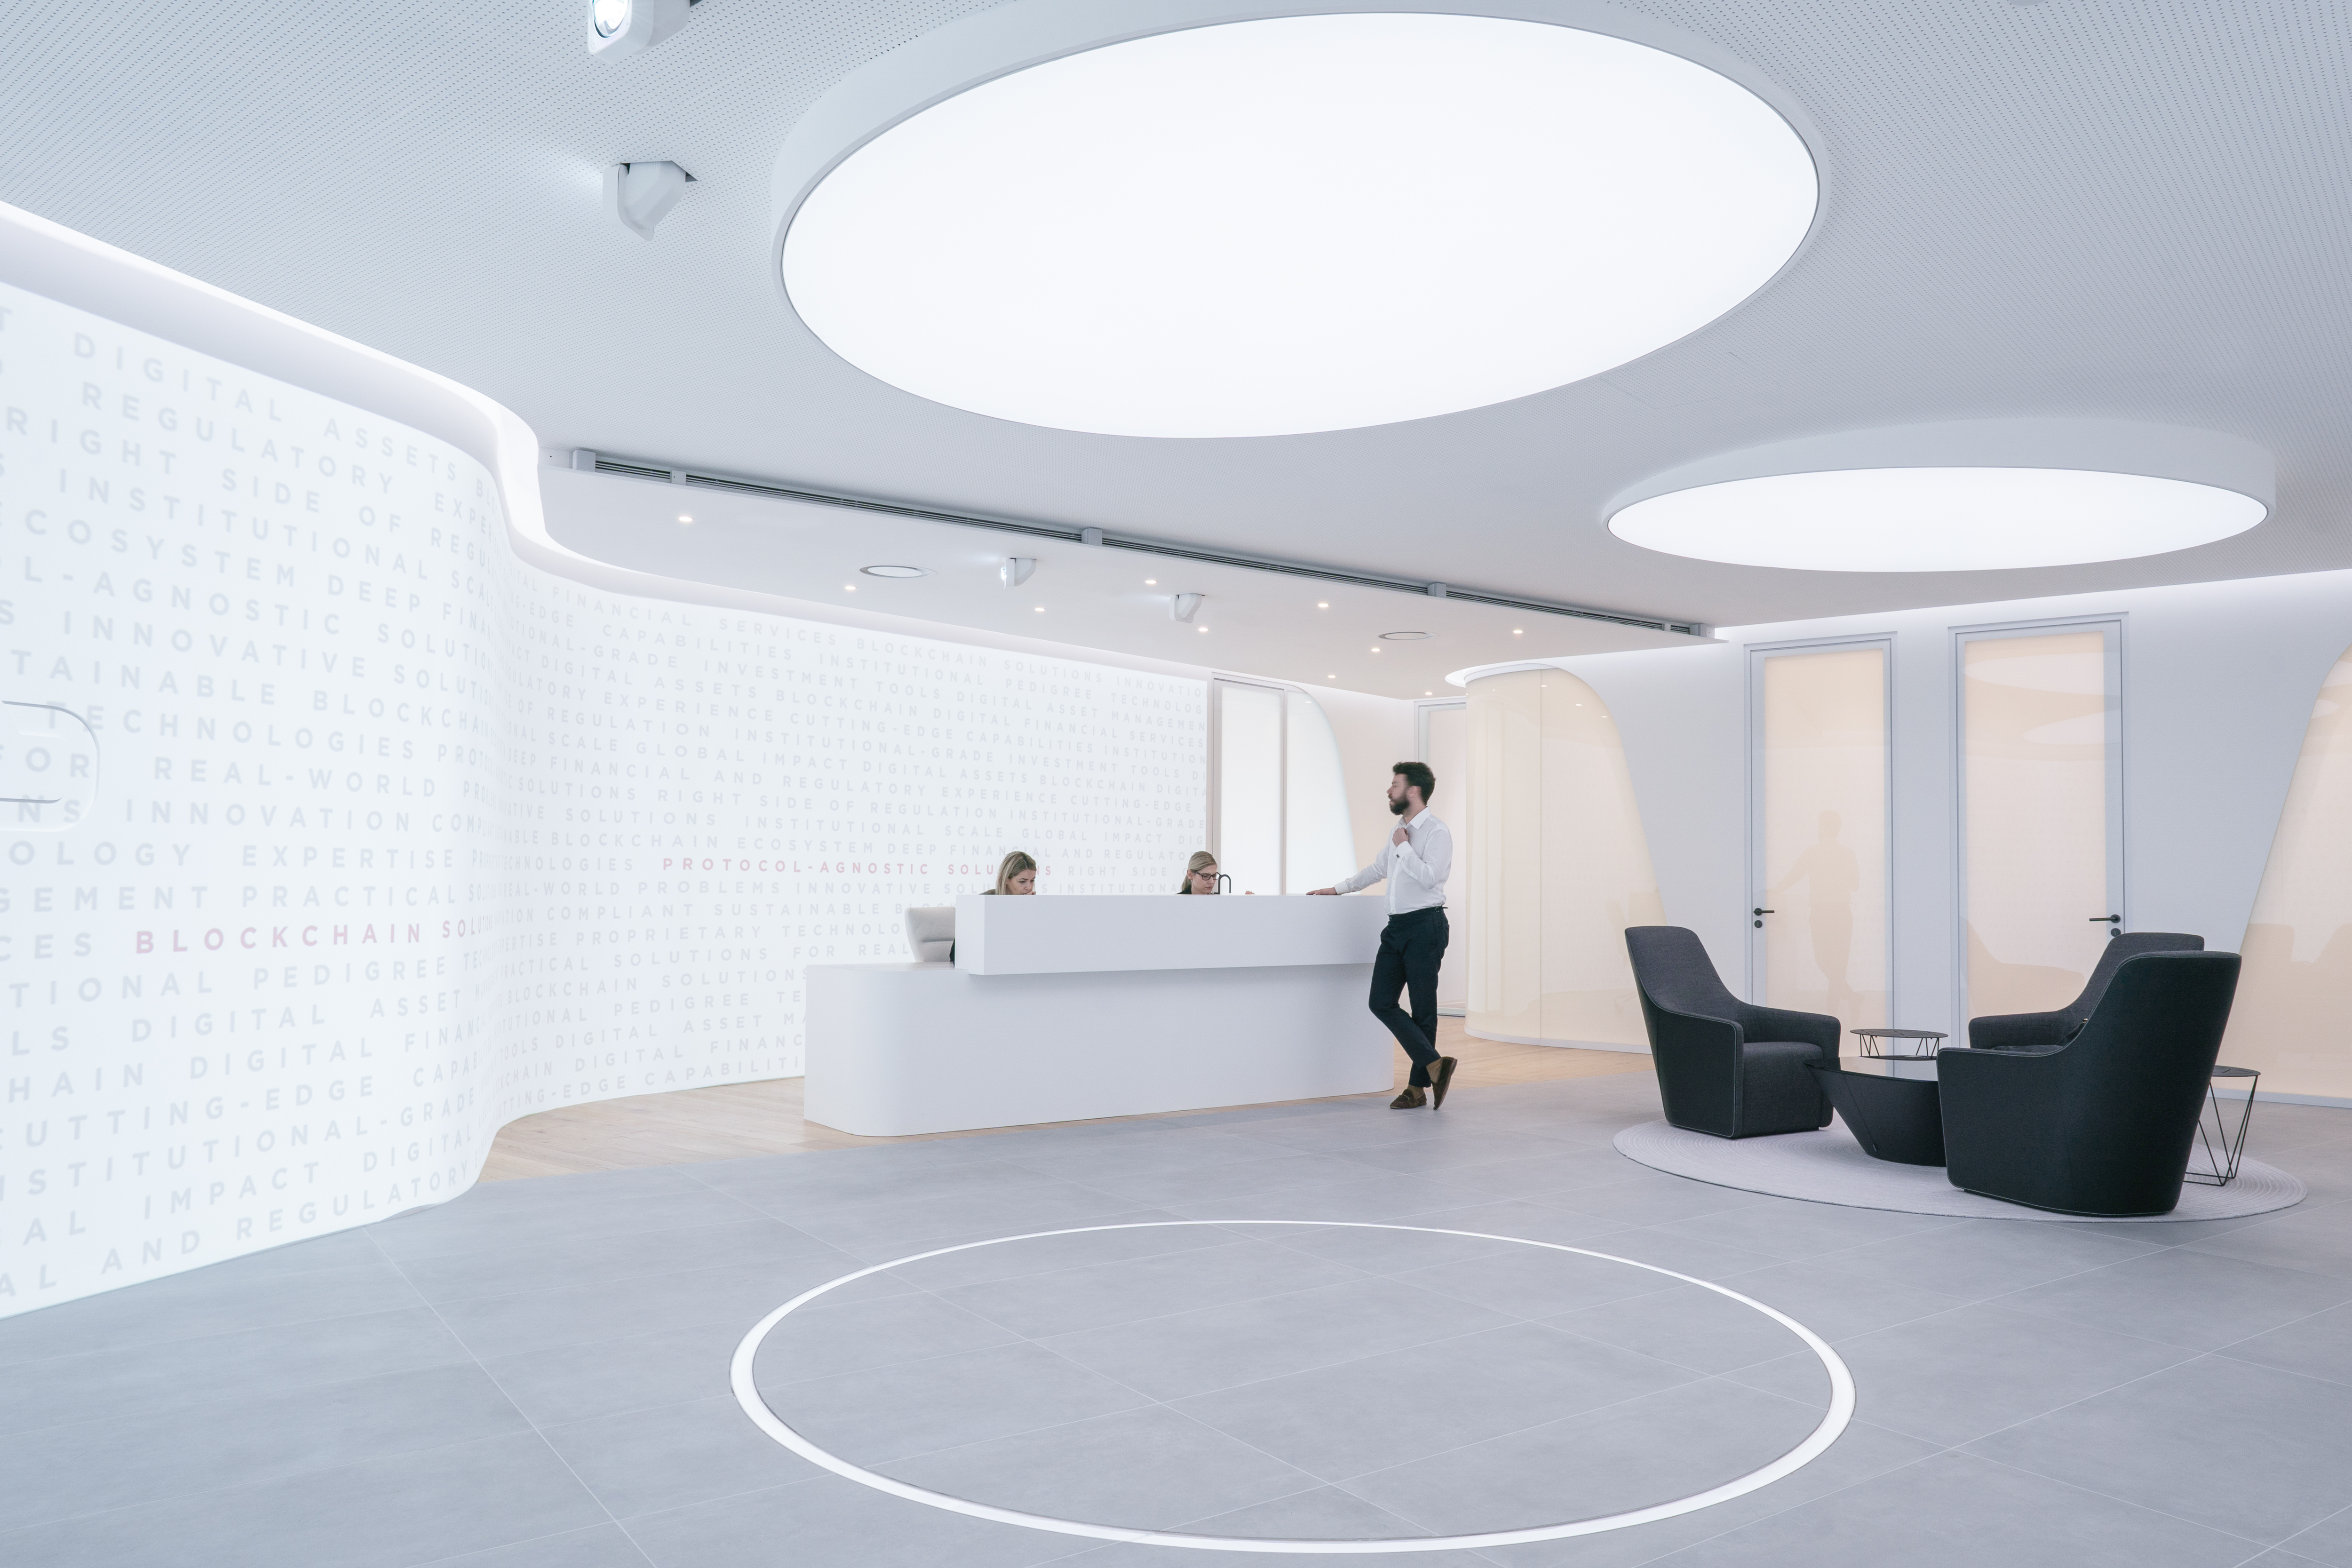 The tech industry is seeing the value of designing LEED and WELL certified workplaces